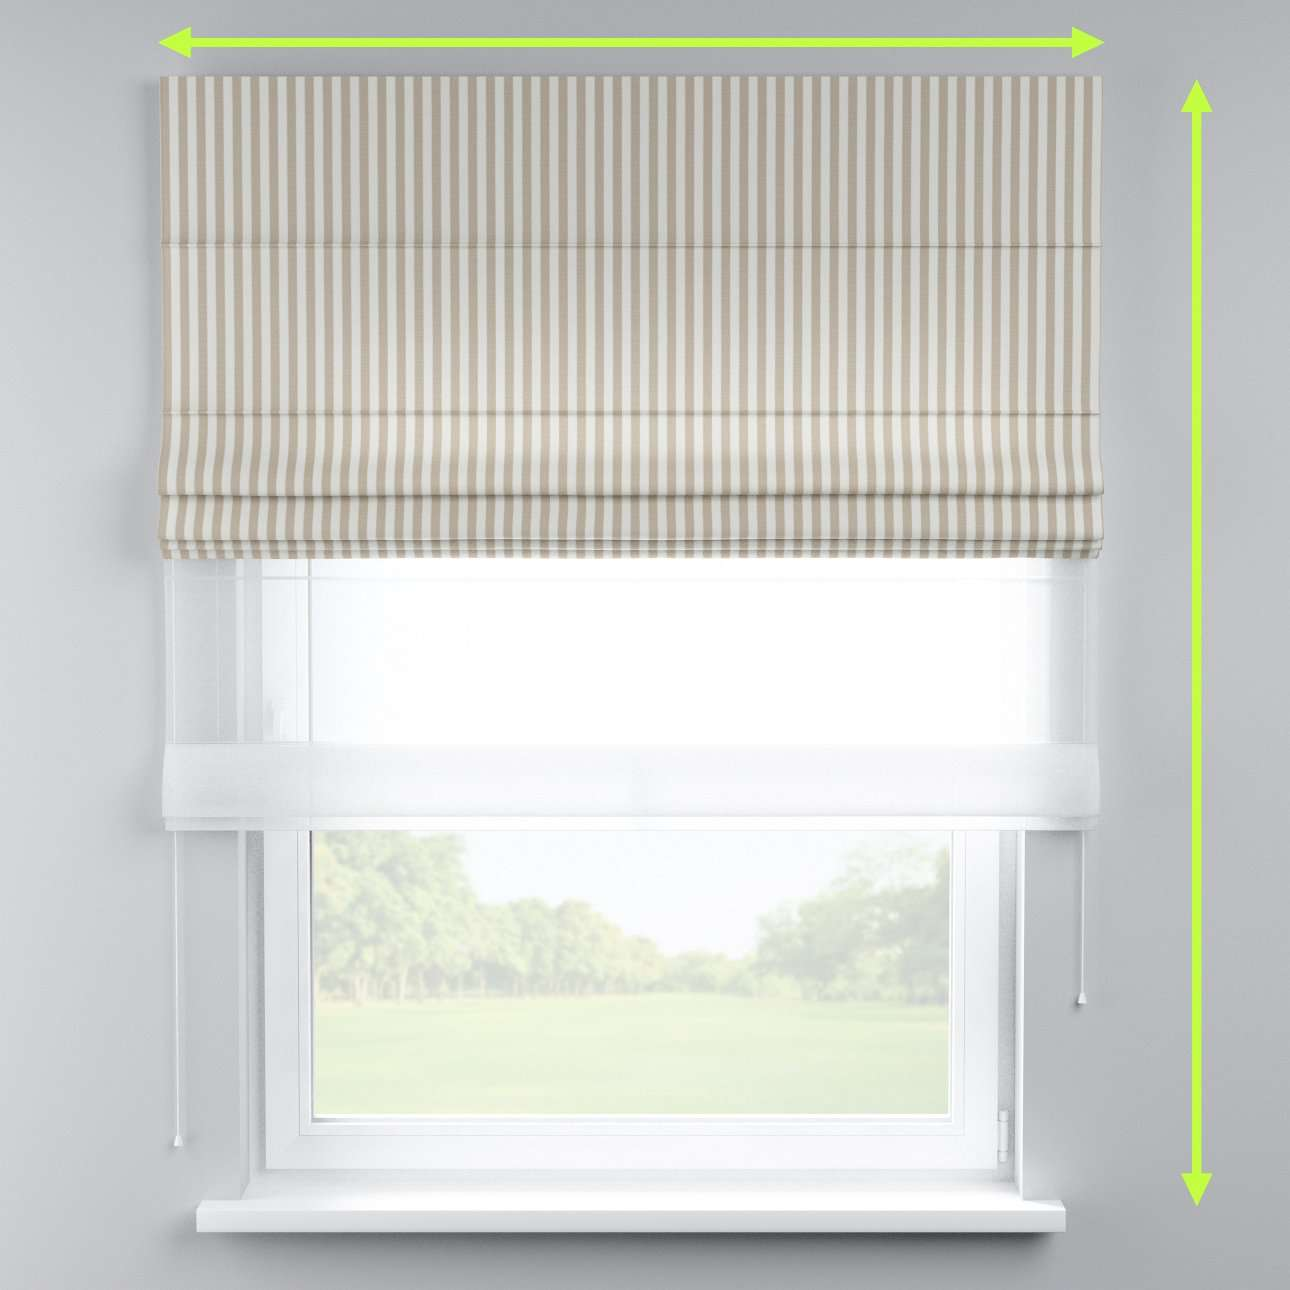 Voile and fabric roman blind (DUO II) in collection Quadro, fabric: 136-07